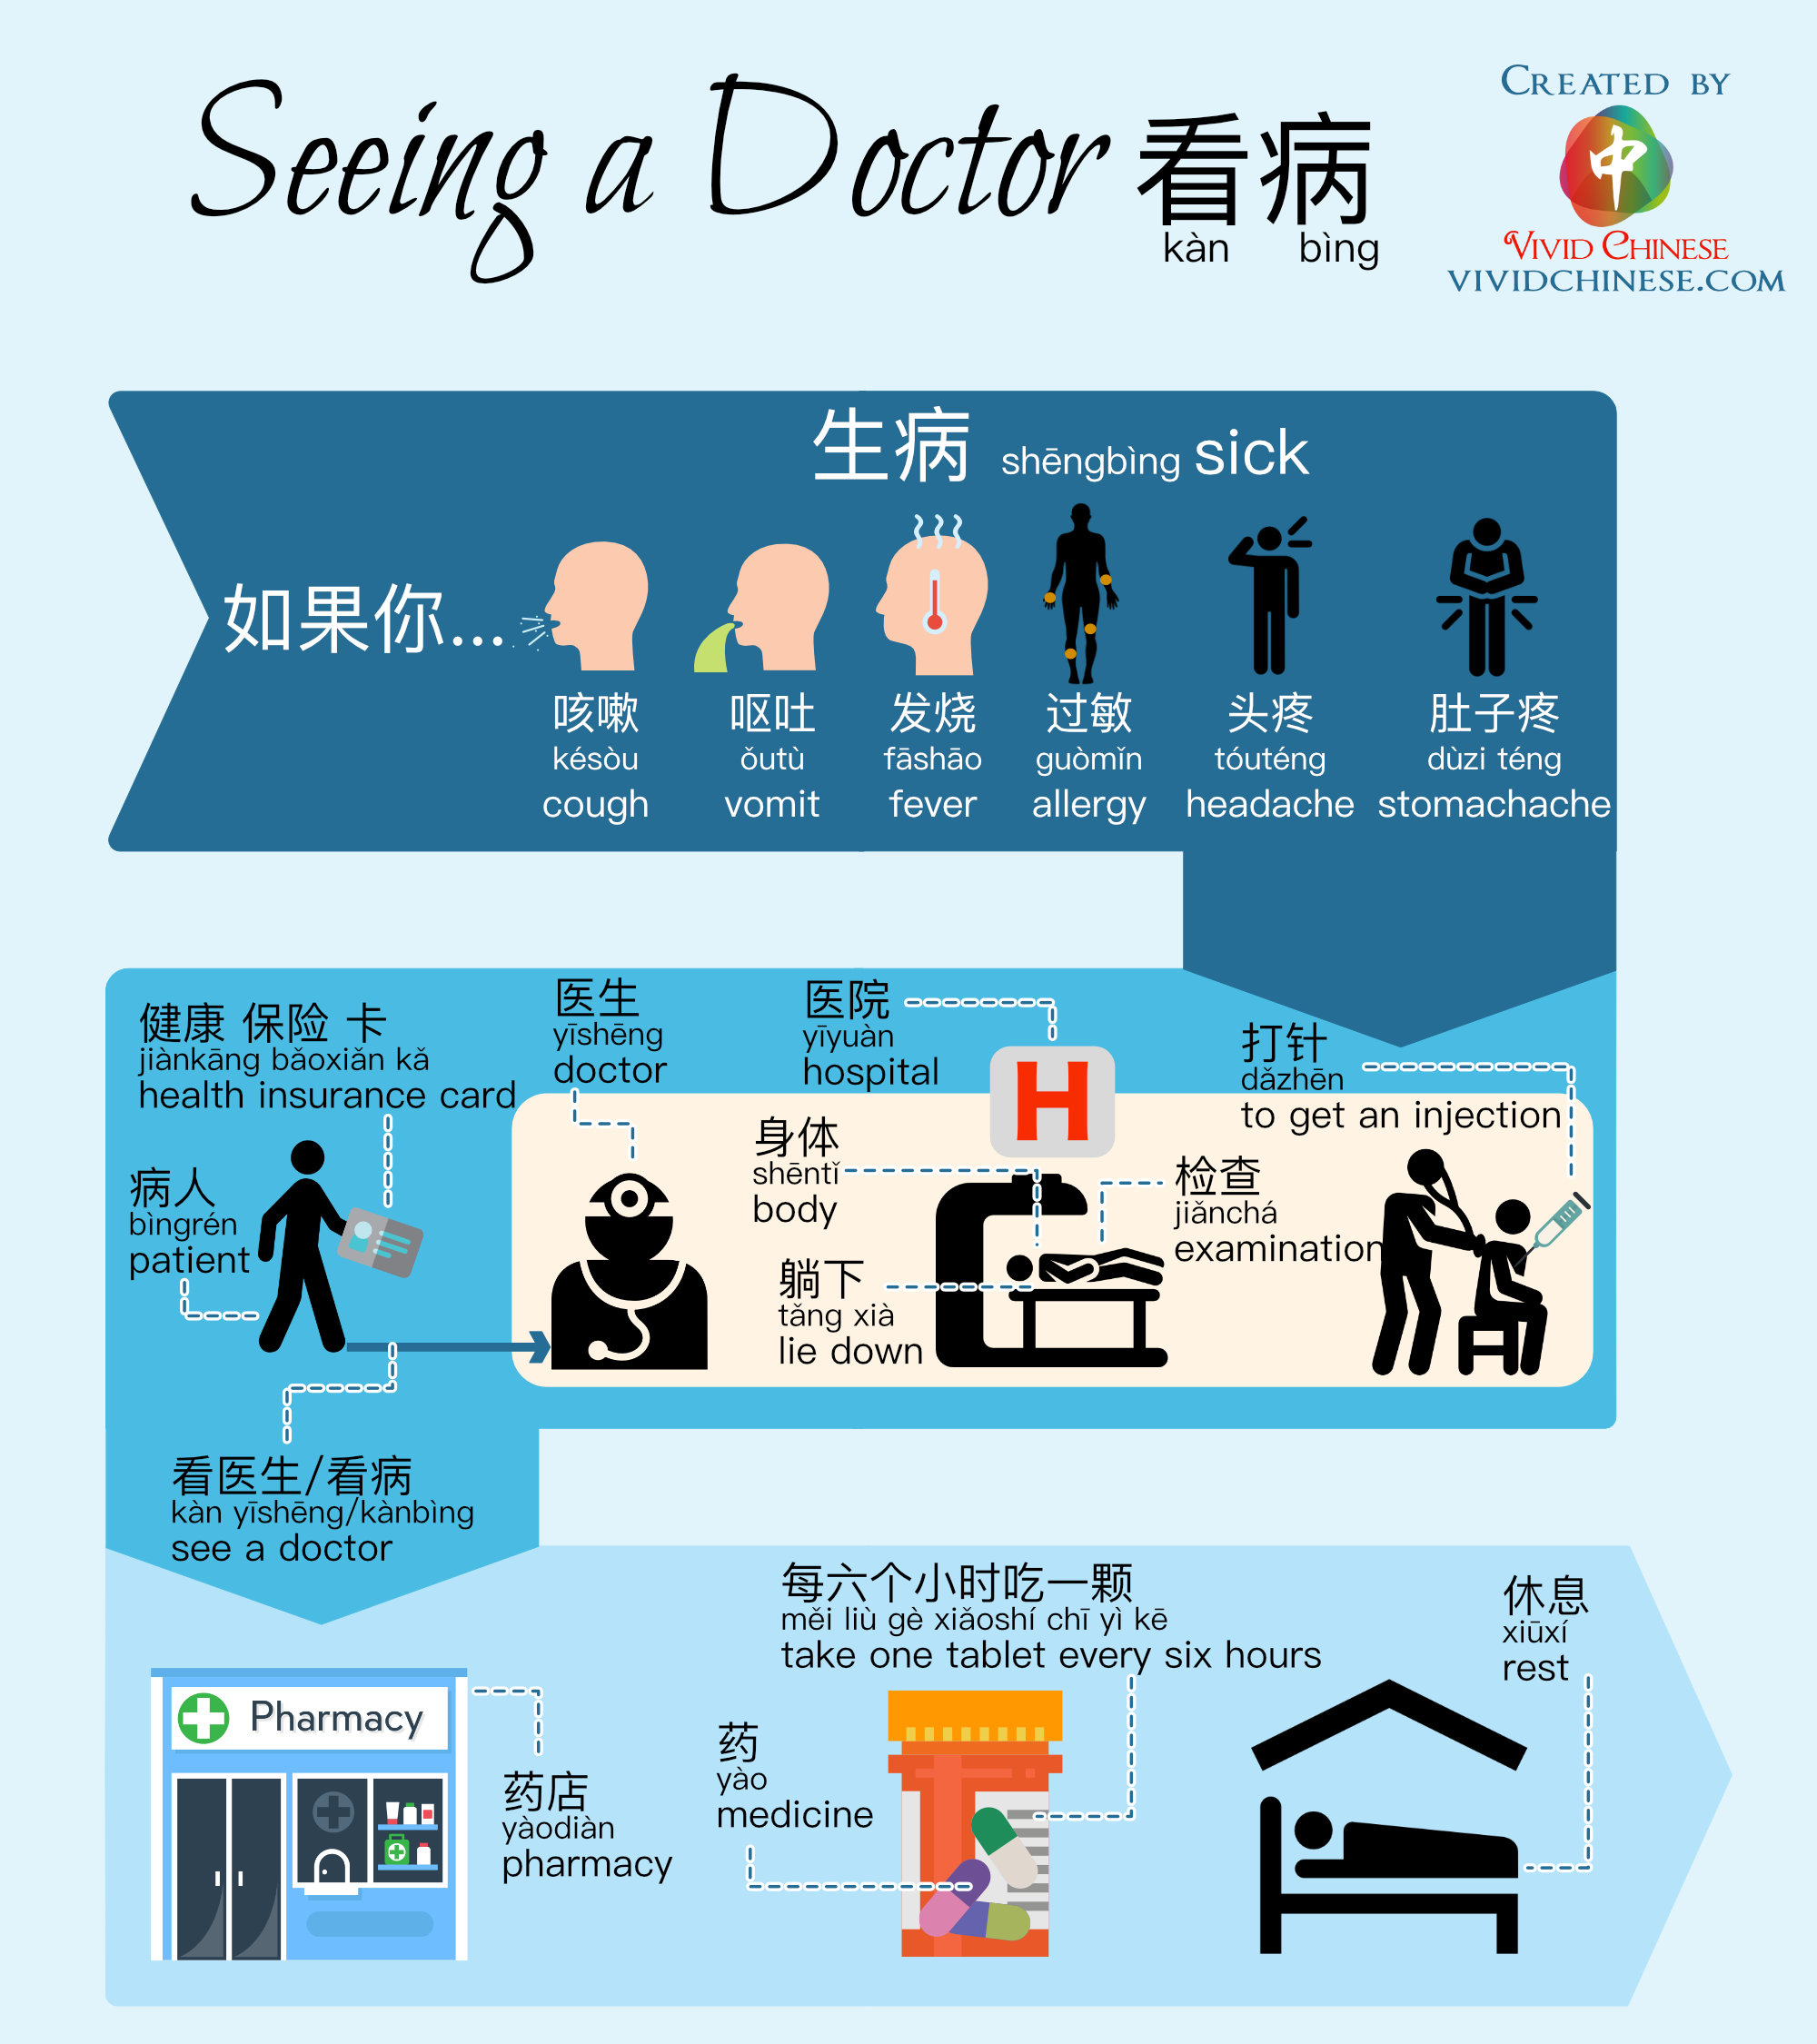 Seeing a doctor SimplifiedChinese Version Infographic